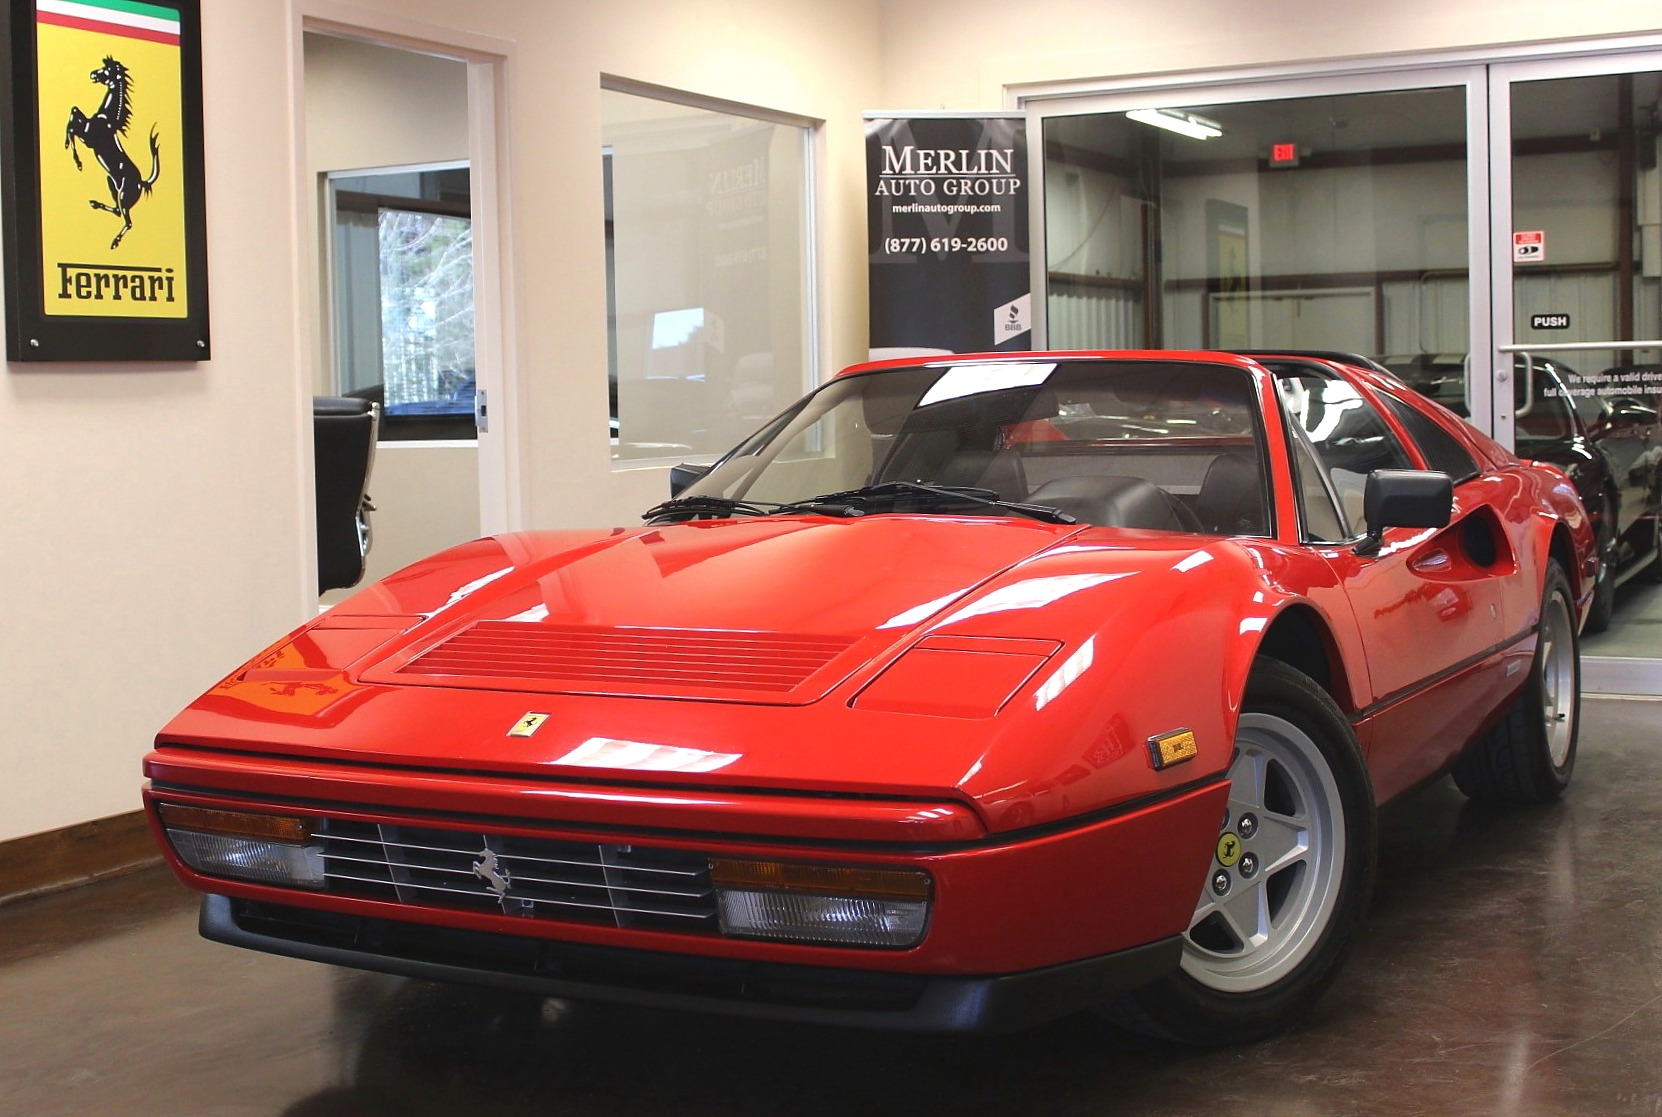 island california sale lease ny vin plainview ferrari htm near used deals t for long